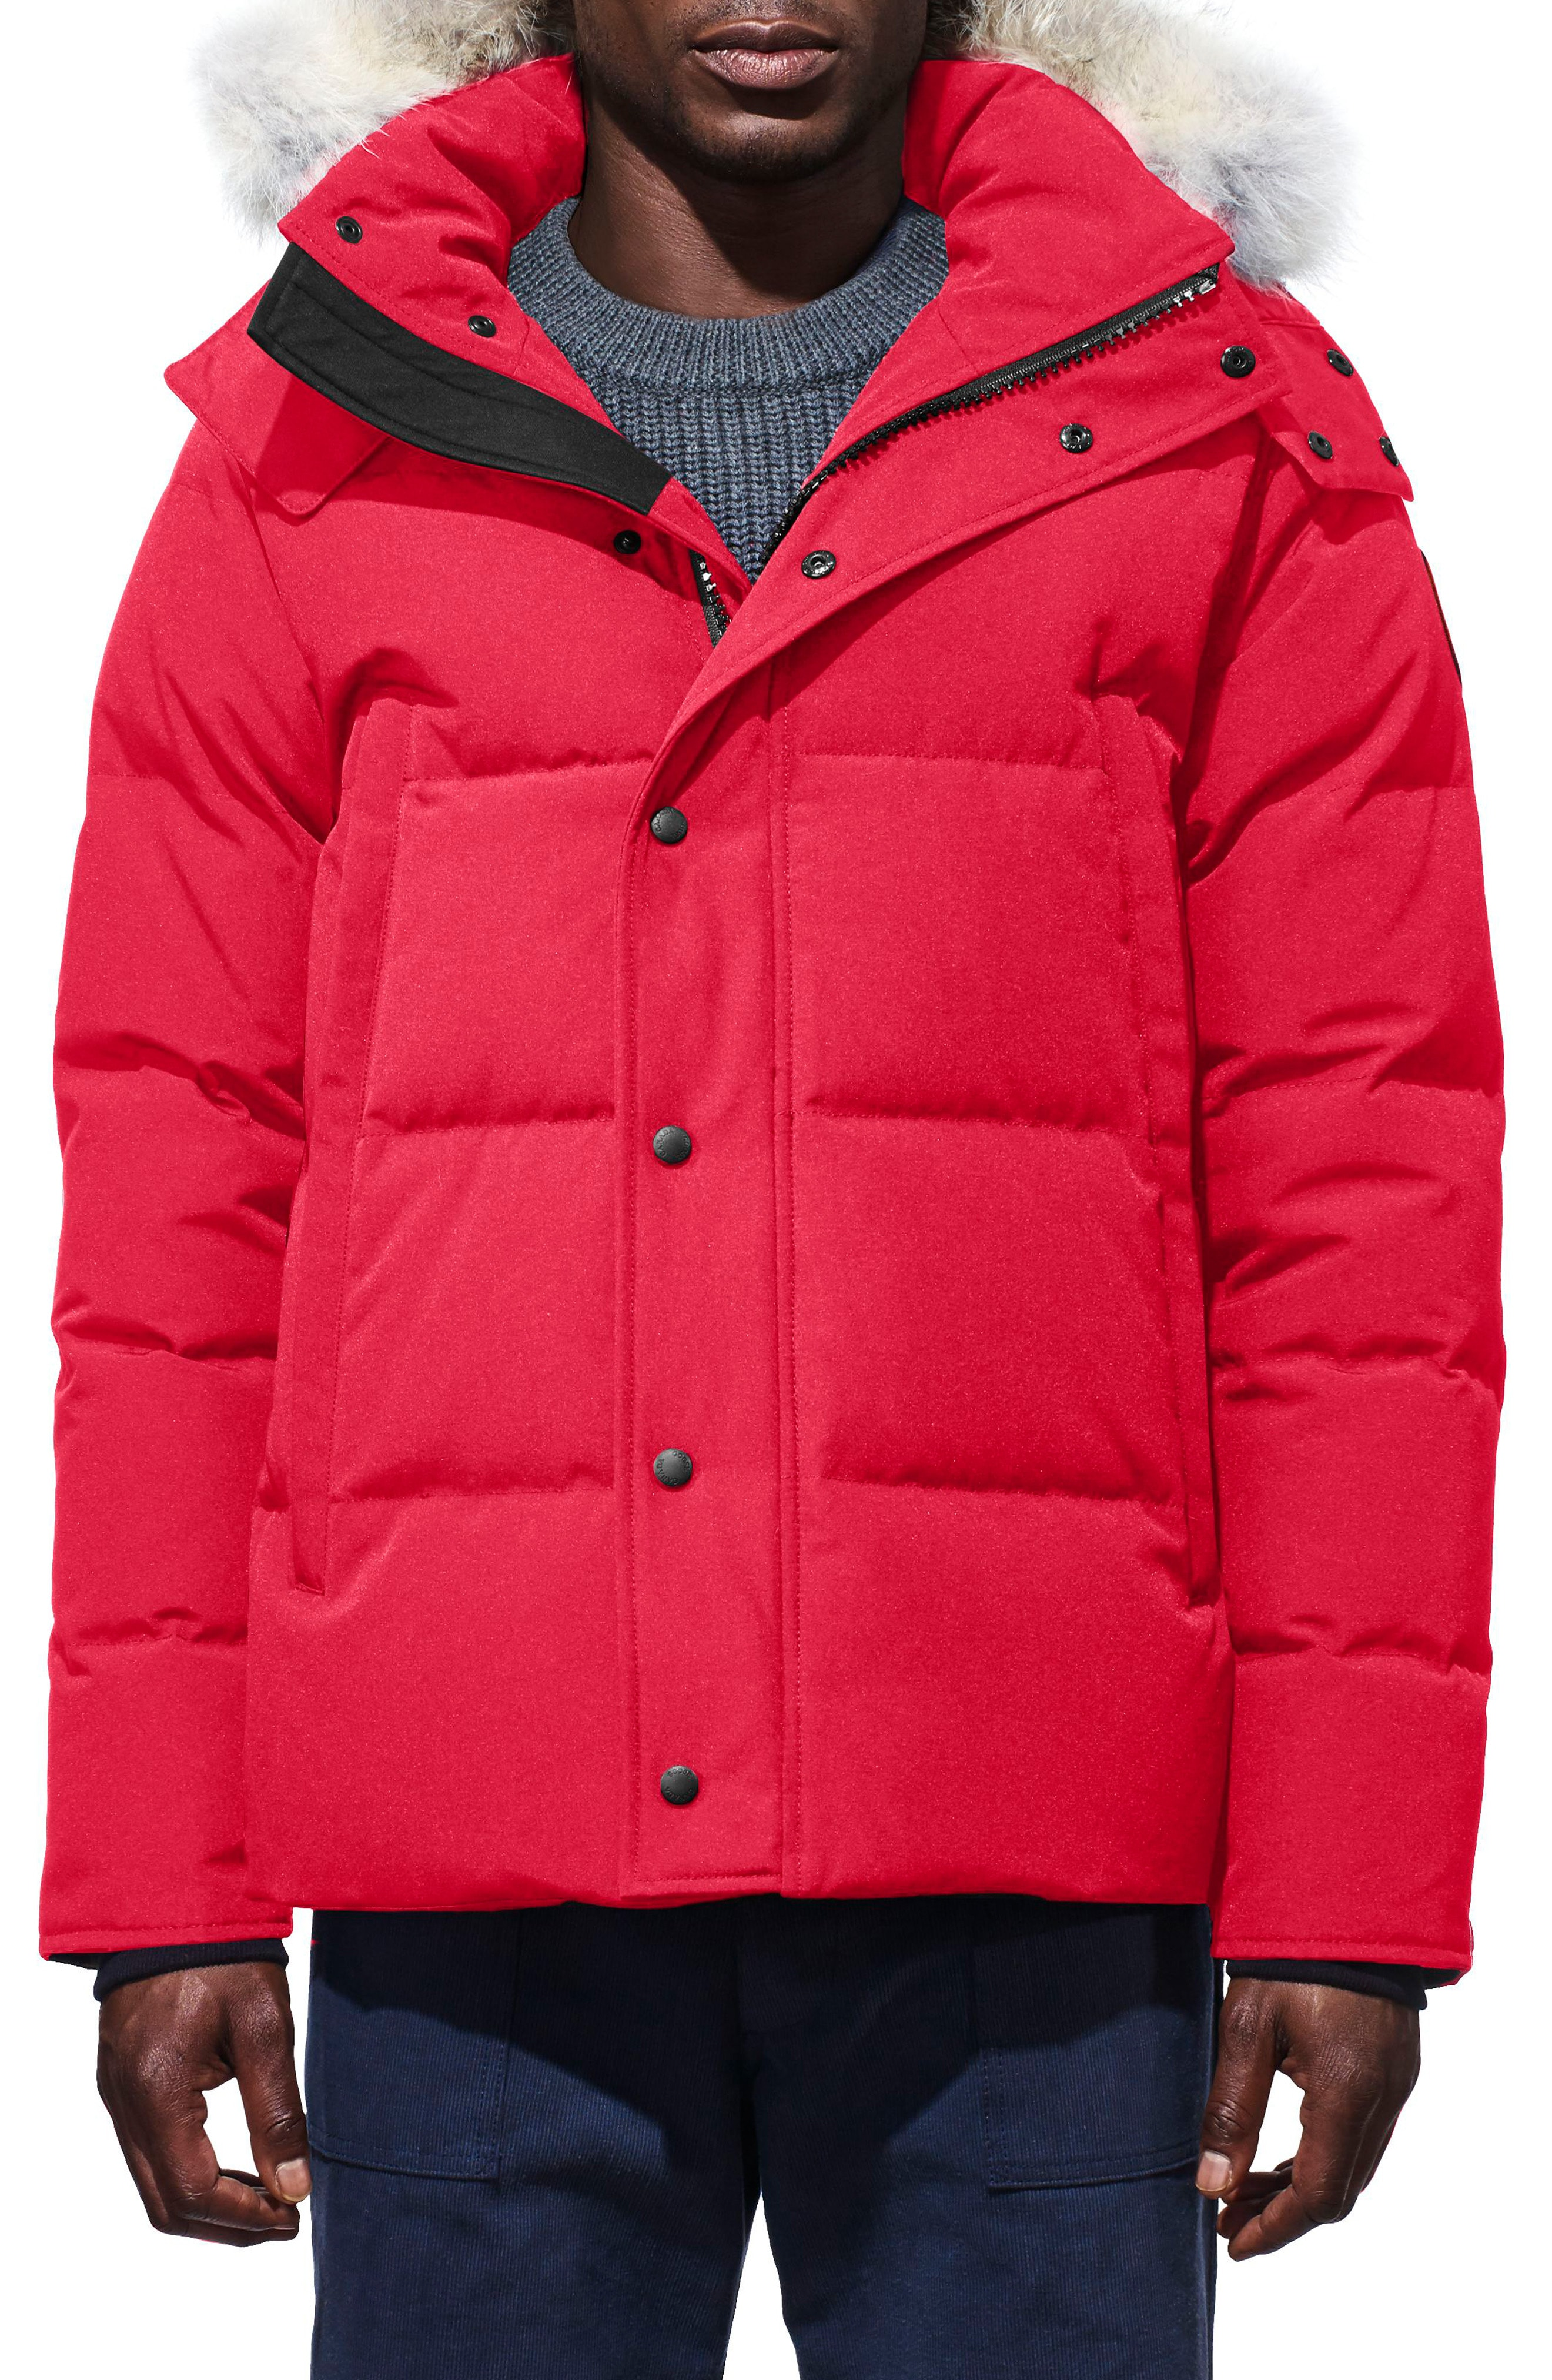 79d400c14b1 Men's Canada Goose Wyndham Slim Fit Genuine Coyote Fur Trim Down Jacket,  Size X-Small - Red